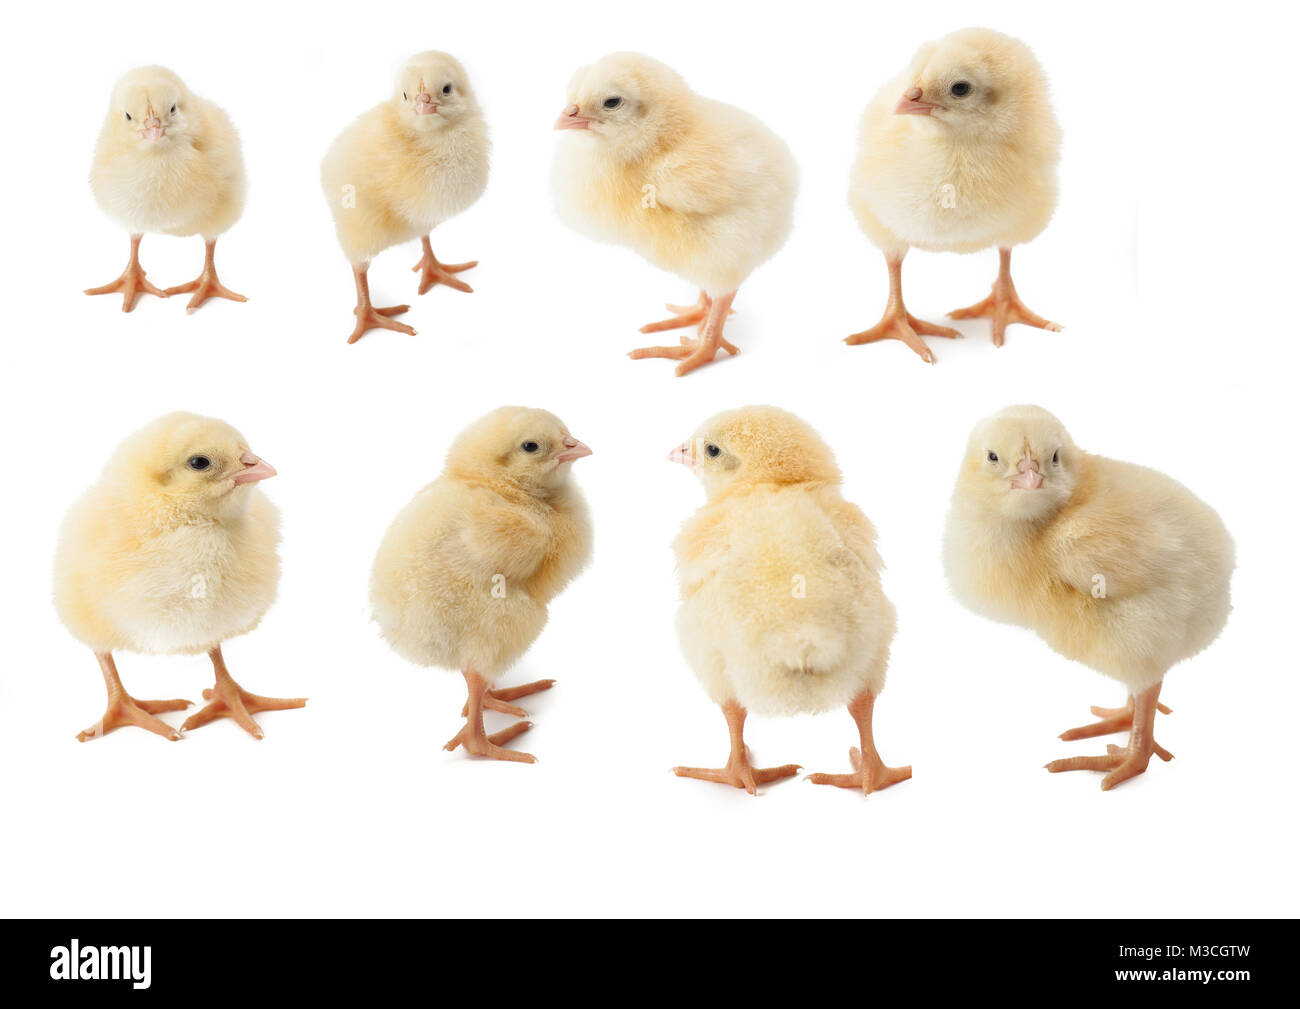 small fluffy yellow Easter Chickens on a white background - Stock Image